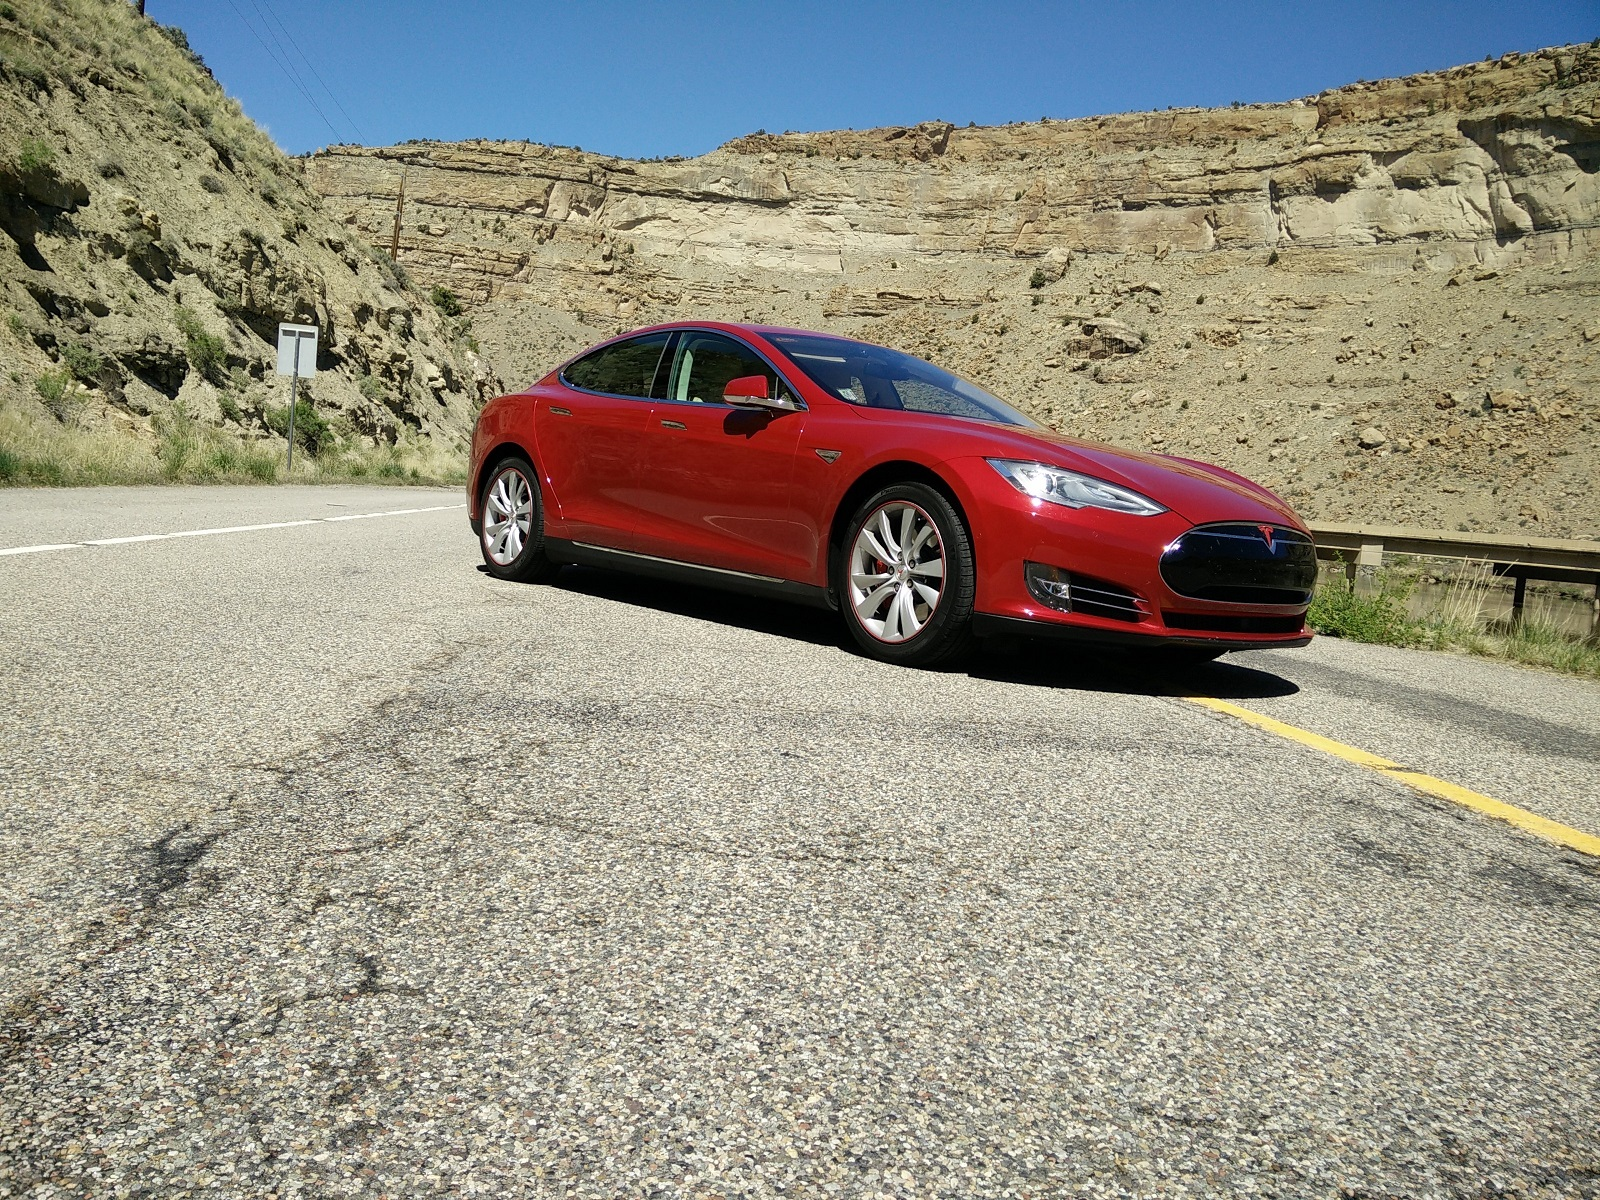 tesla model s too many problems to recommend consumer reports says. Black Bedroom Furniture Sets. Home Design Ideas